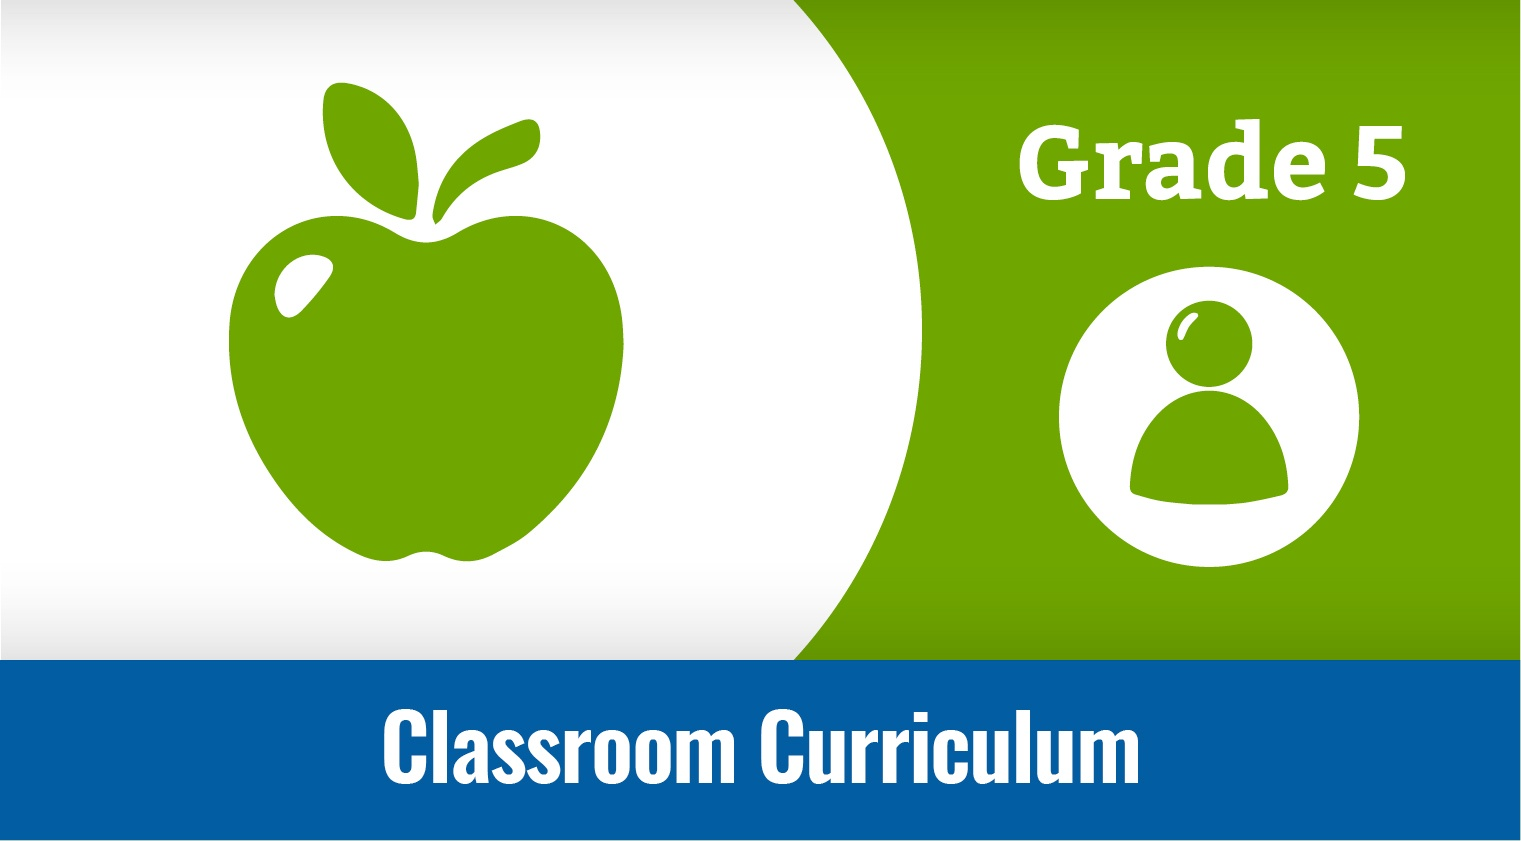 Grade 5 Classroom Curriculum - Breaking Through Barriers